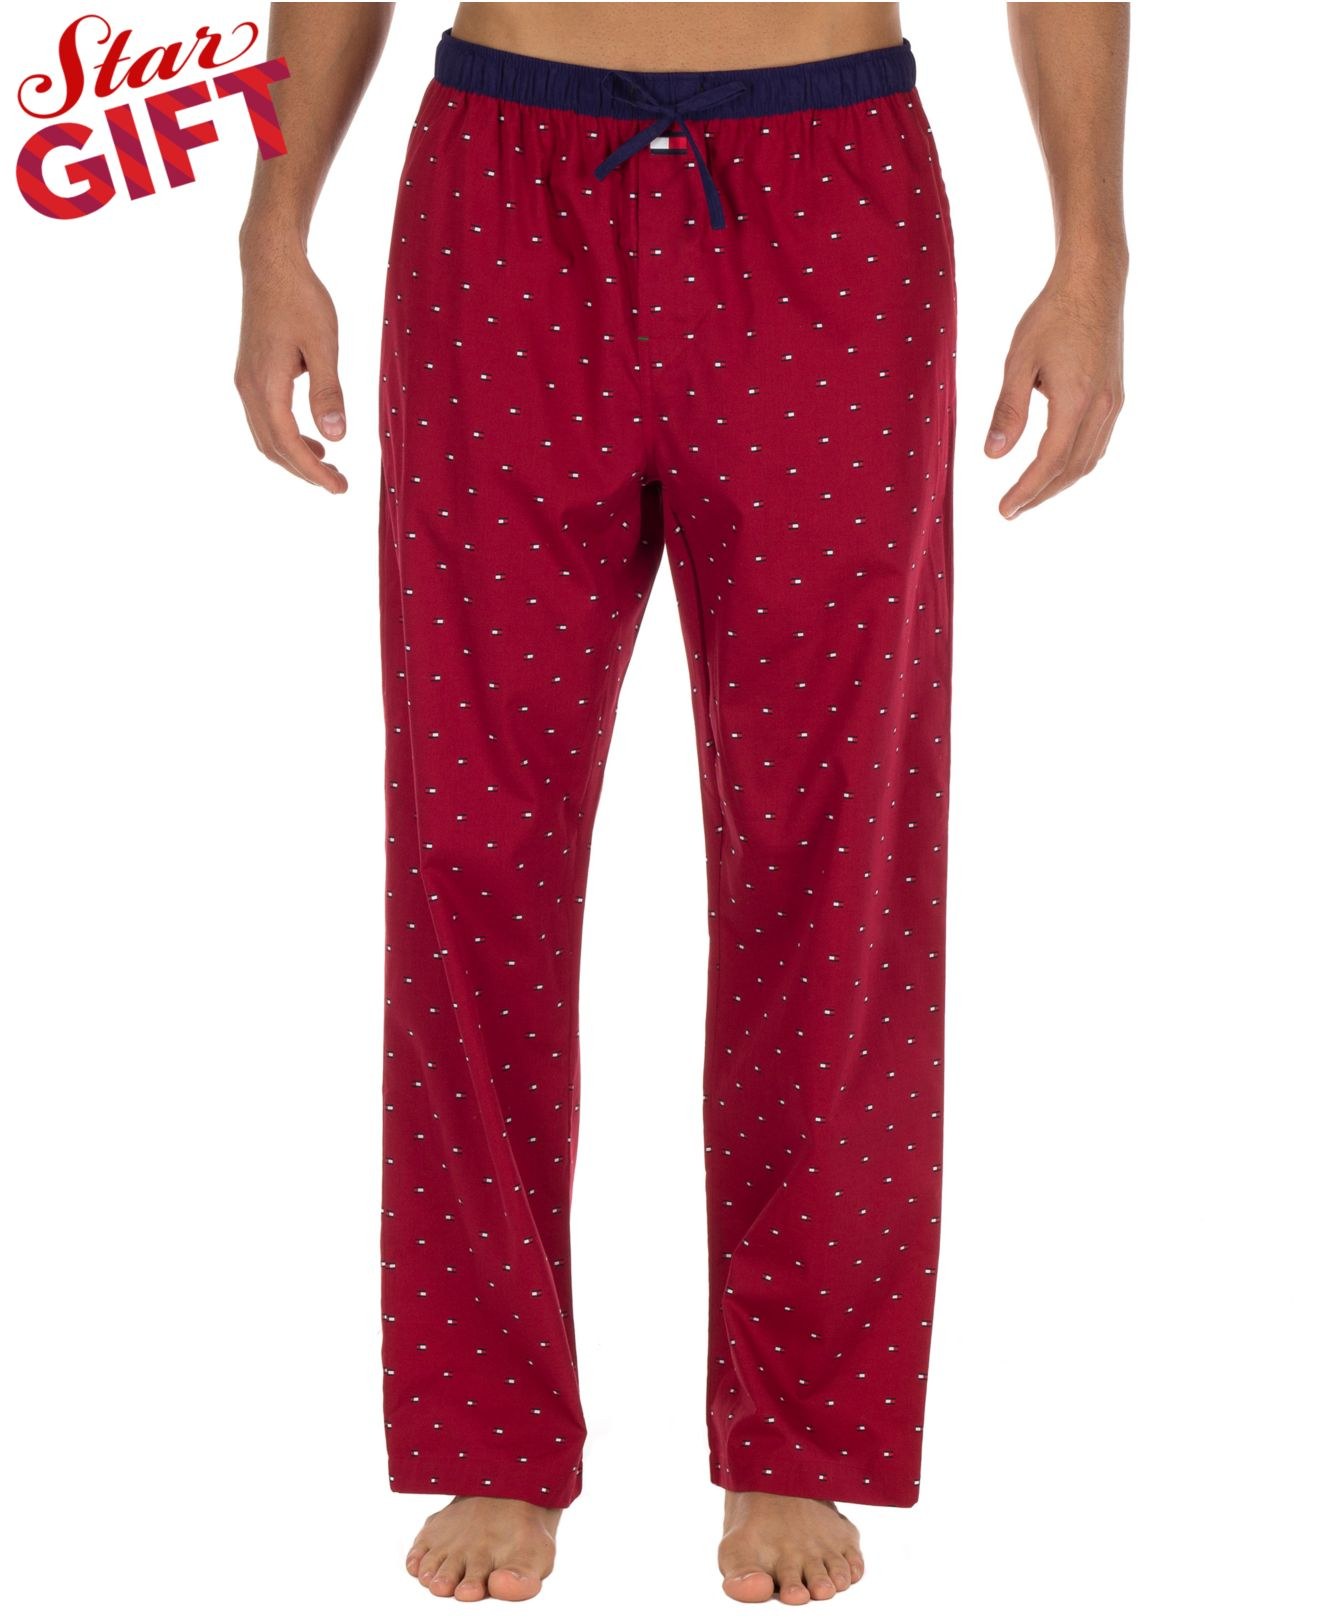 Ralph Lauren Men S Pajama Pants Creativehobby Store